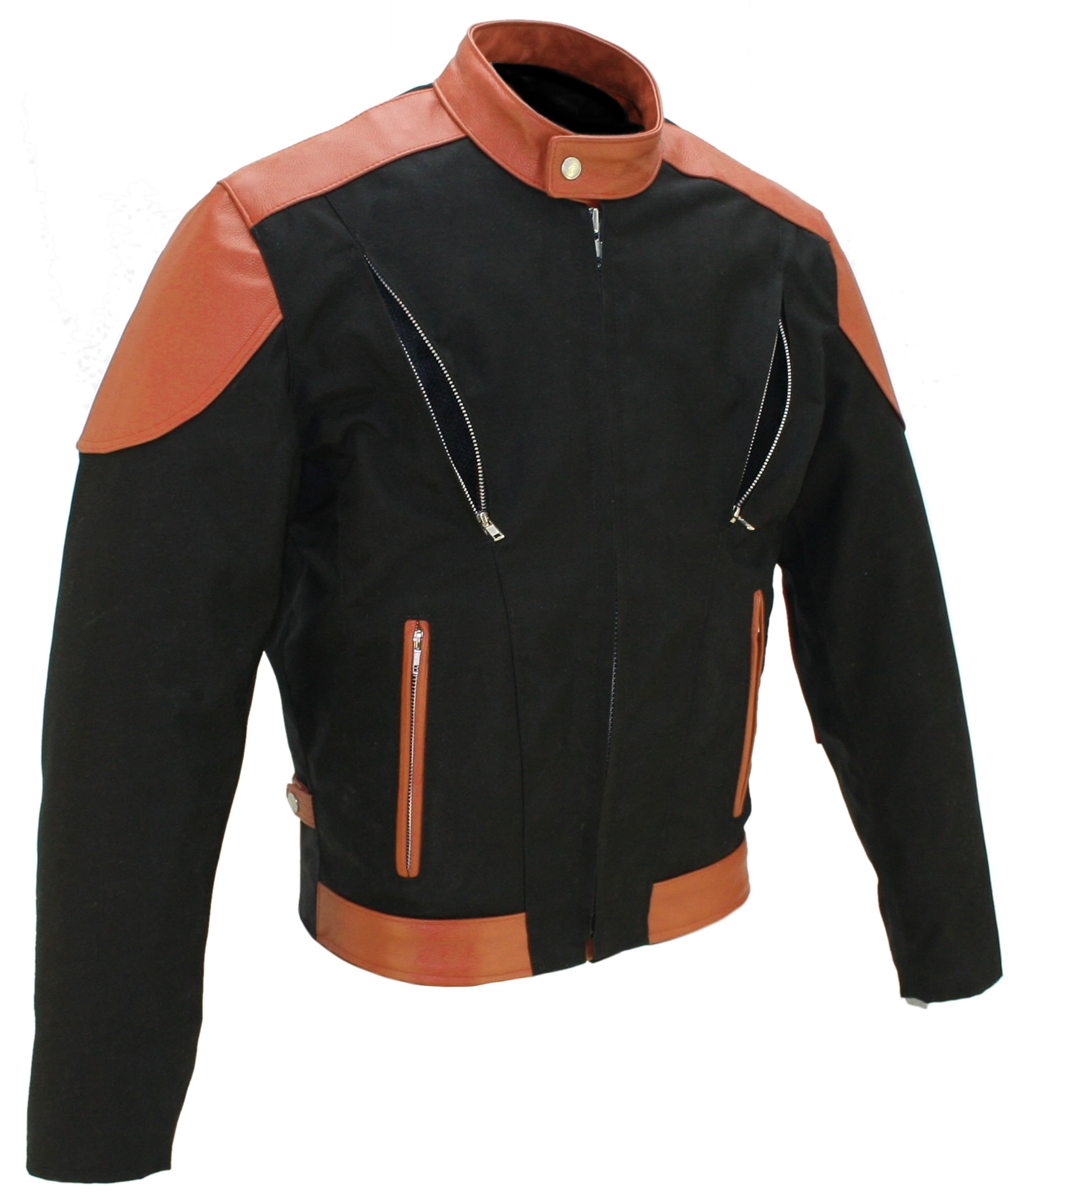 The Vented Leather & Cordura Jacket. This jacket is made of 1.2-1.4 soft premium cowhide and Denier Cordura 1000 (Heavy Duty Textile). front and rear vents with heavy mesh liner for full ventilation - Too big or too small - adjustable Sides, Too Hot - rem